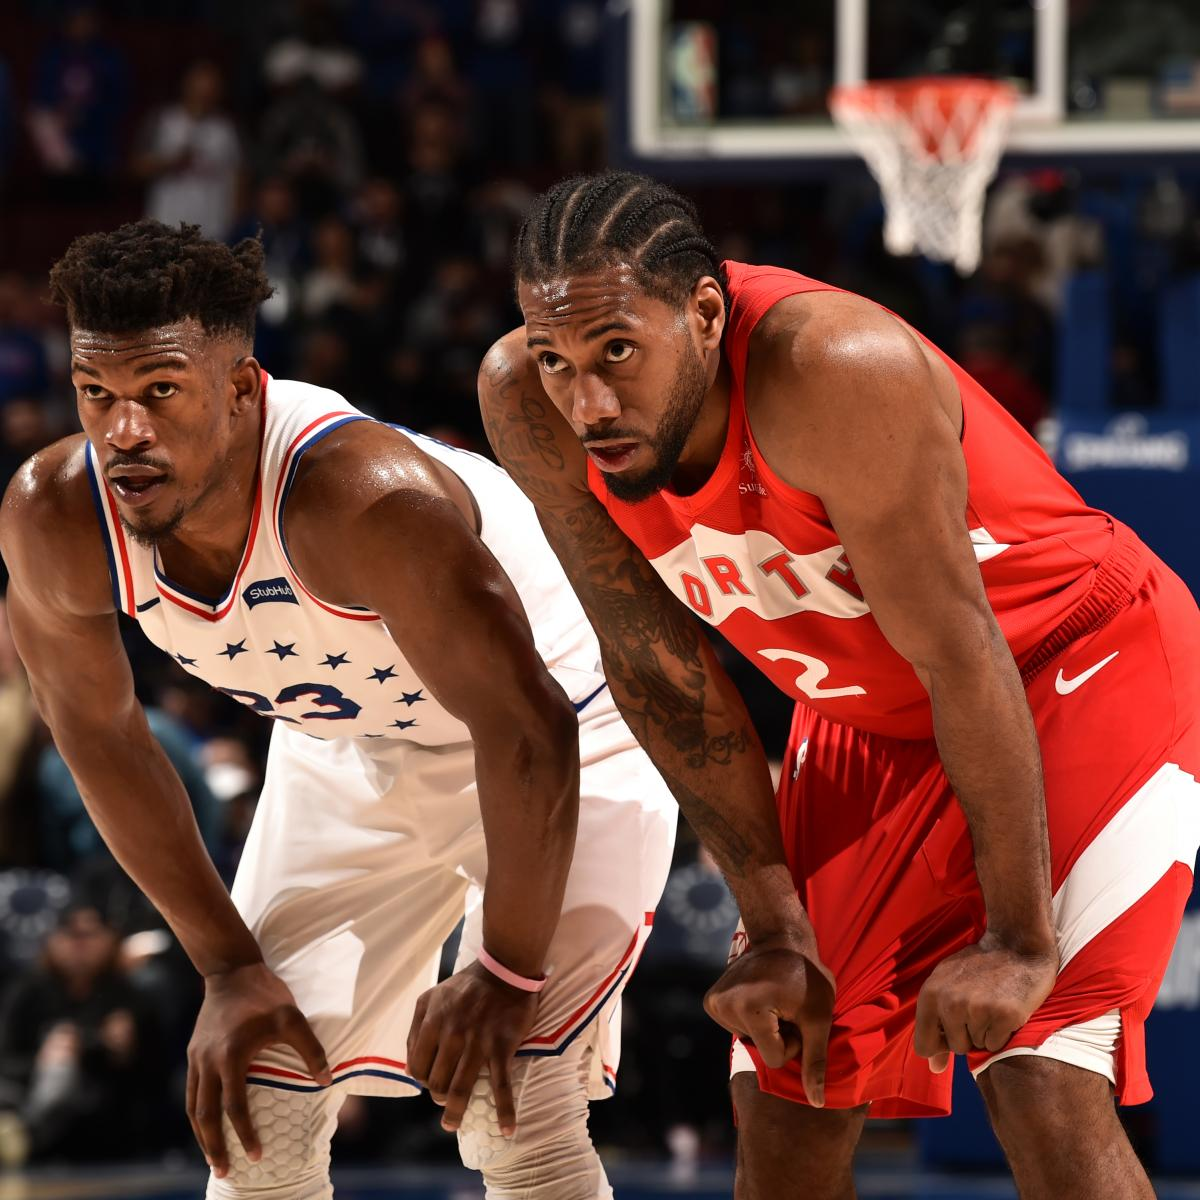 Kawhi Leonard and Jimmy Butler engaged in a Game 4 duel that resembled something out of Terminator 2, and Leonard was the winning machine Sunday afternoon as his Toronto Raptors evened the Eastern Conference semifinals with a 101-96 victory...